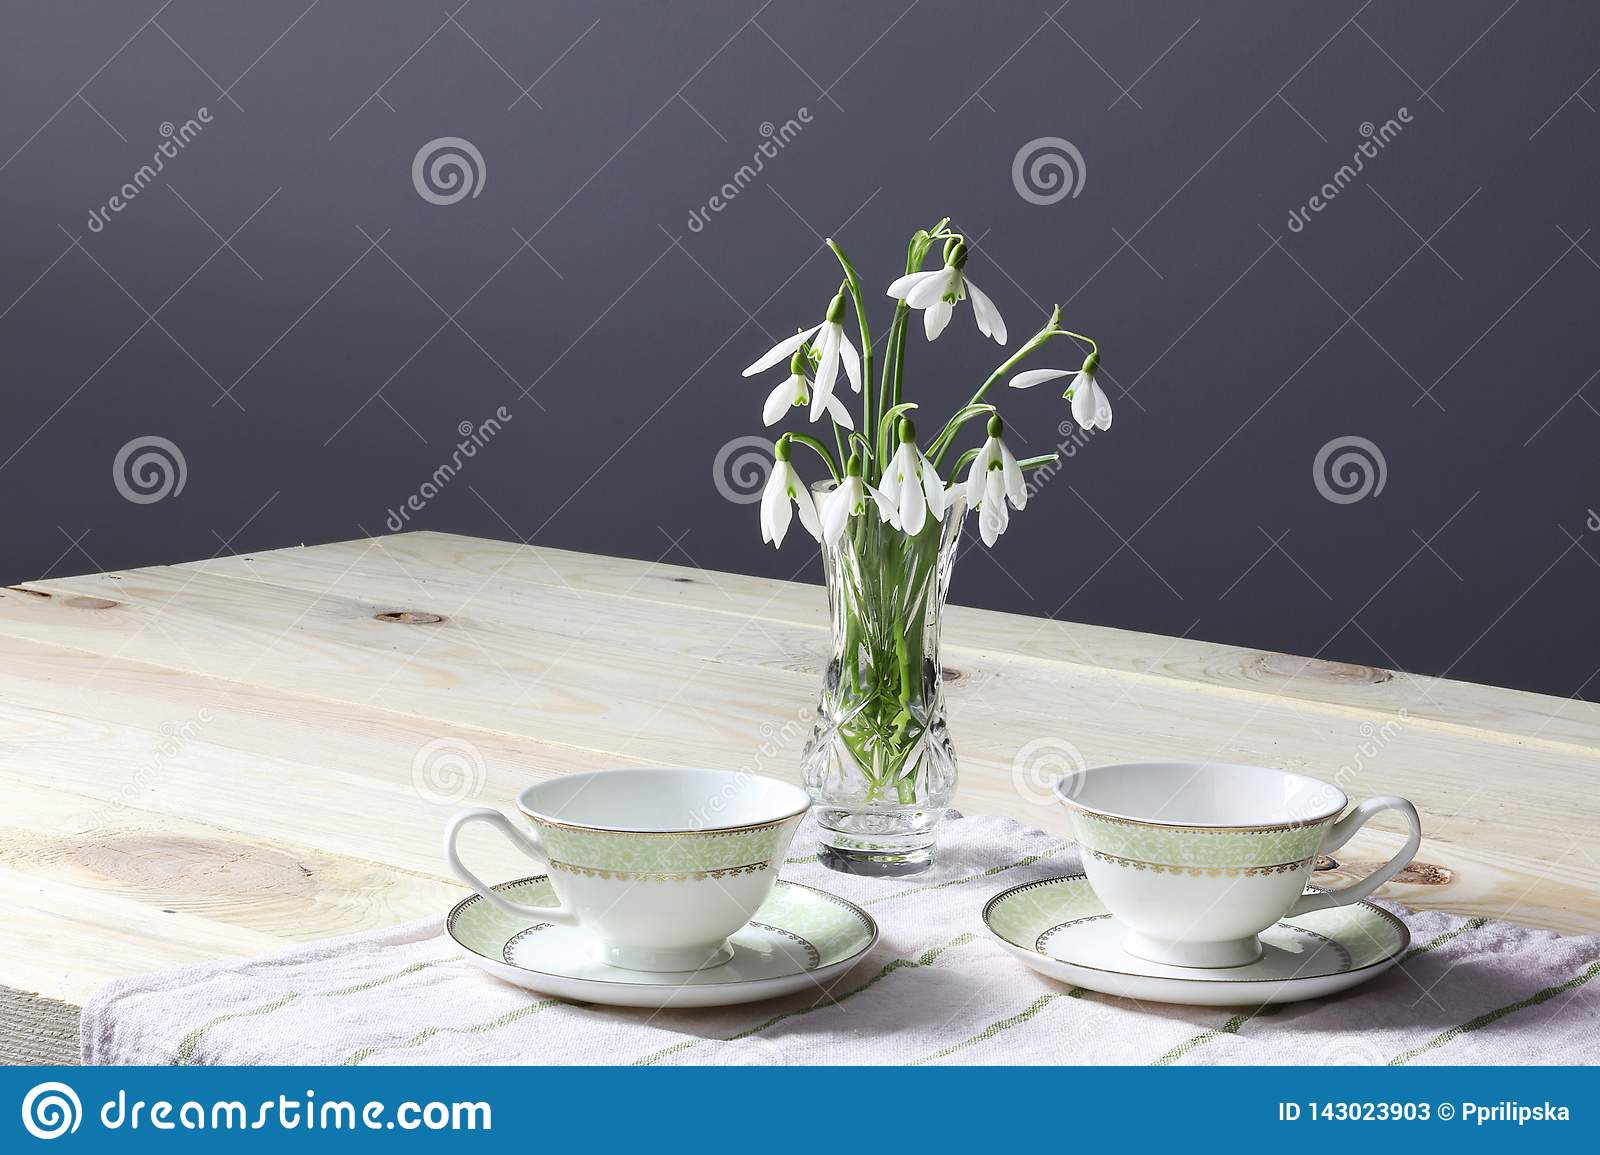 Snowdrops on the table. Spring flowers bouquet. Snowdrops background. Spring flowers on the wooden table. Holiday desk. Holiday fl